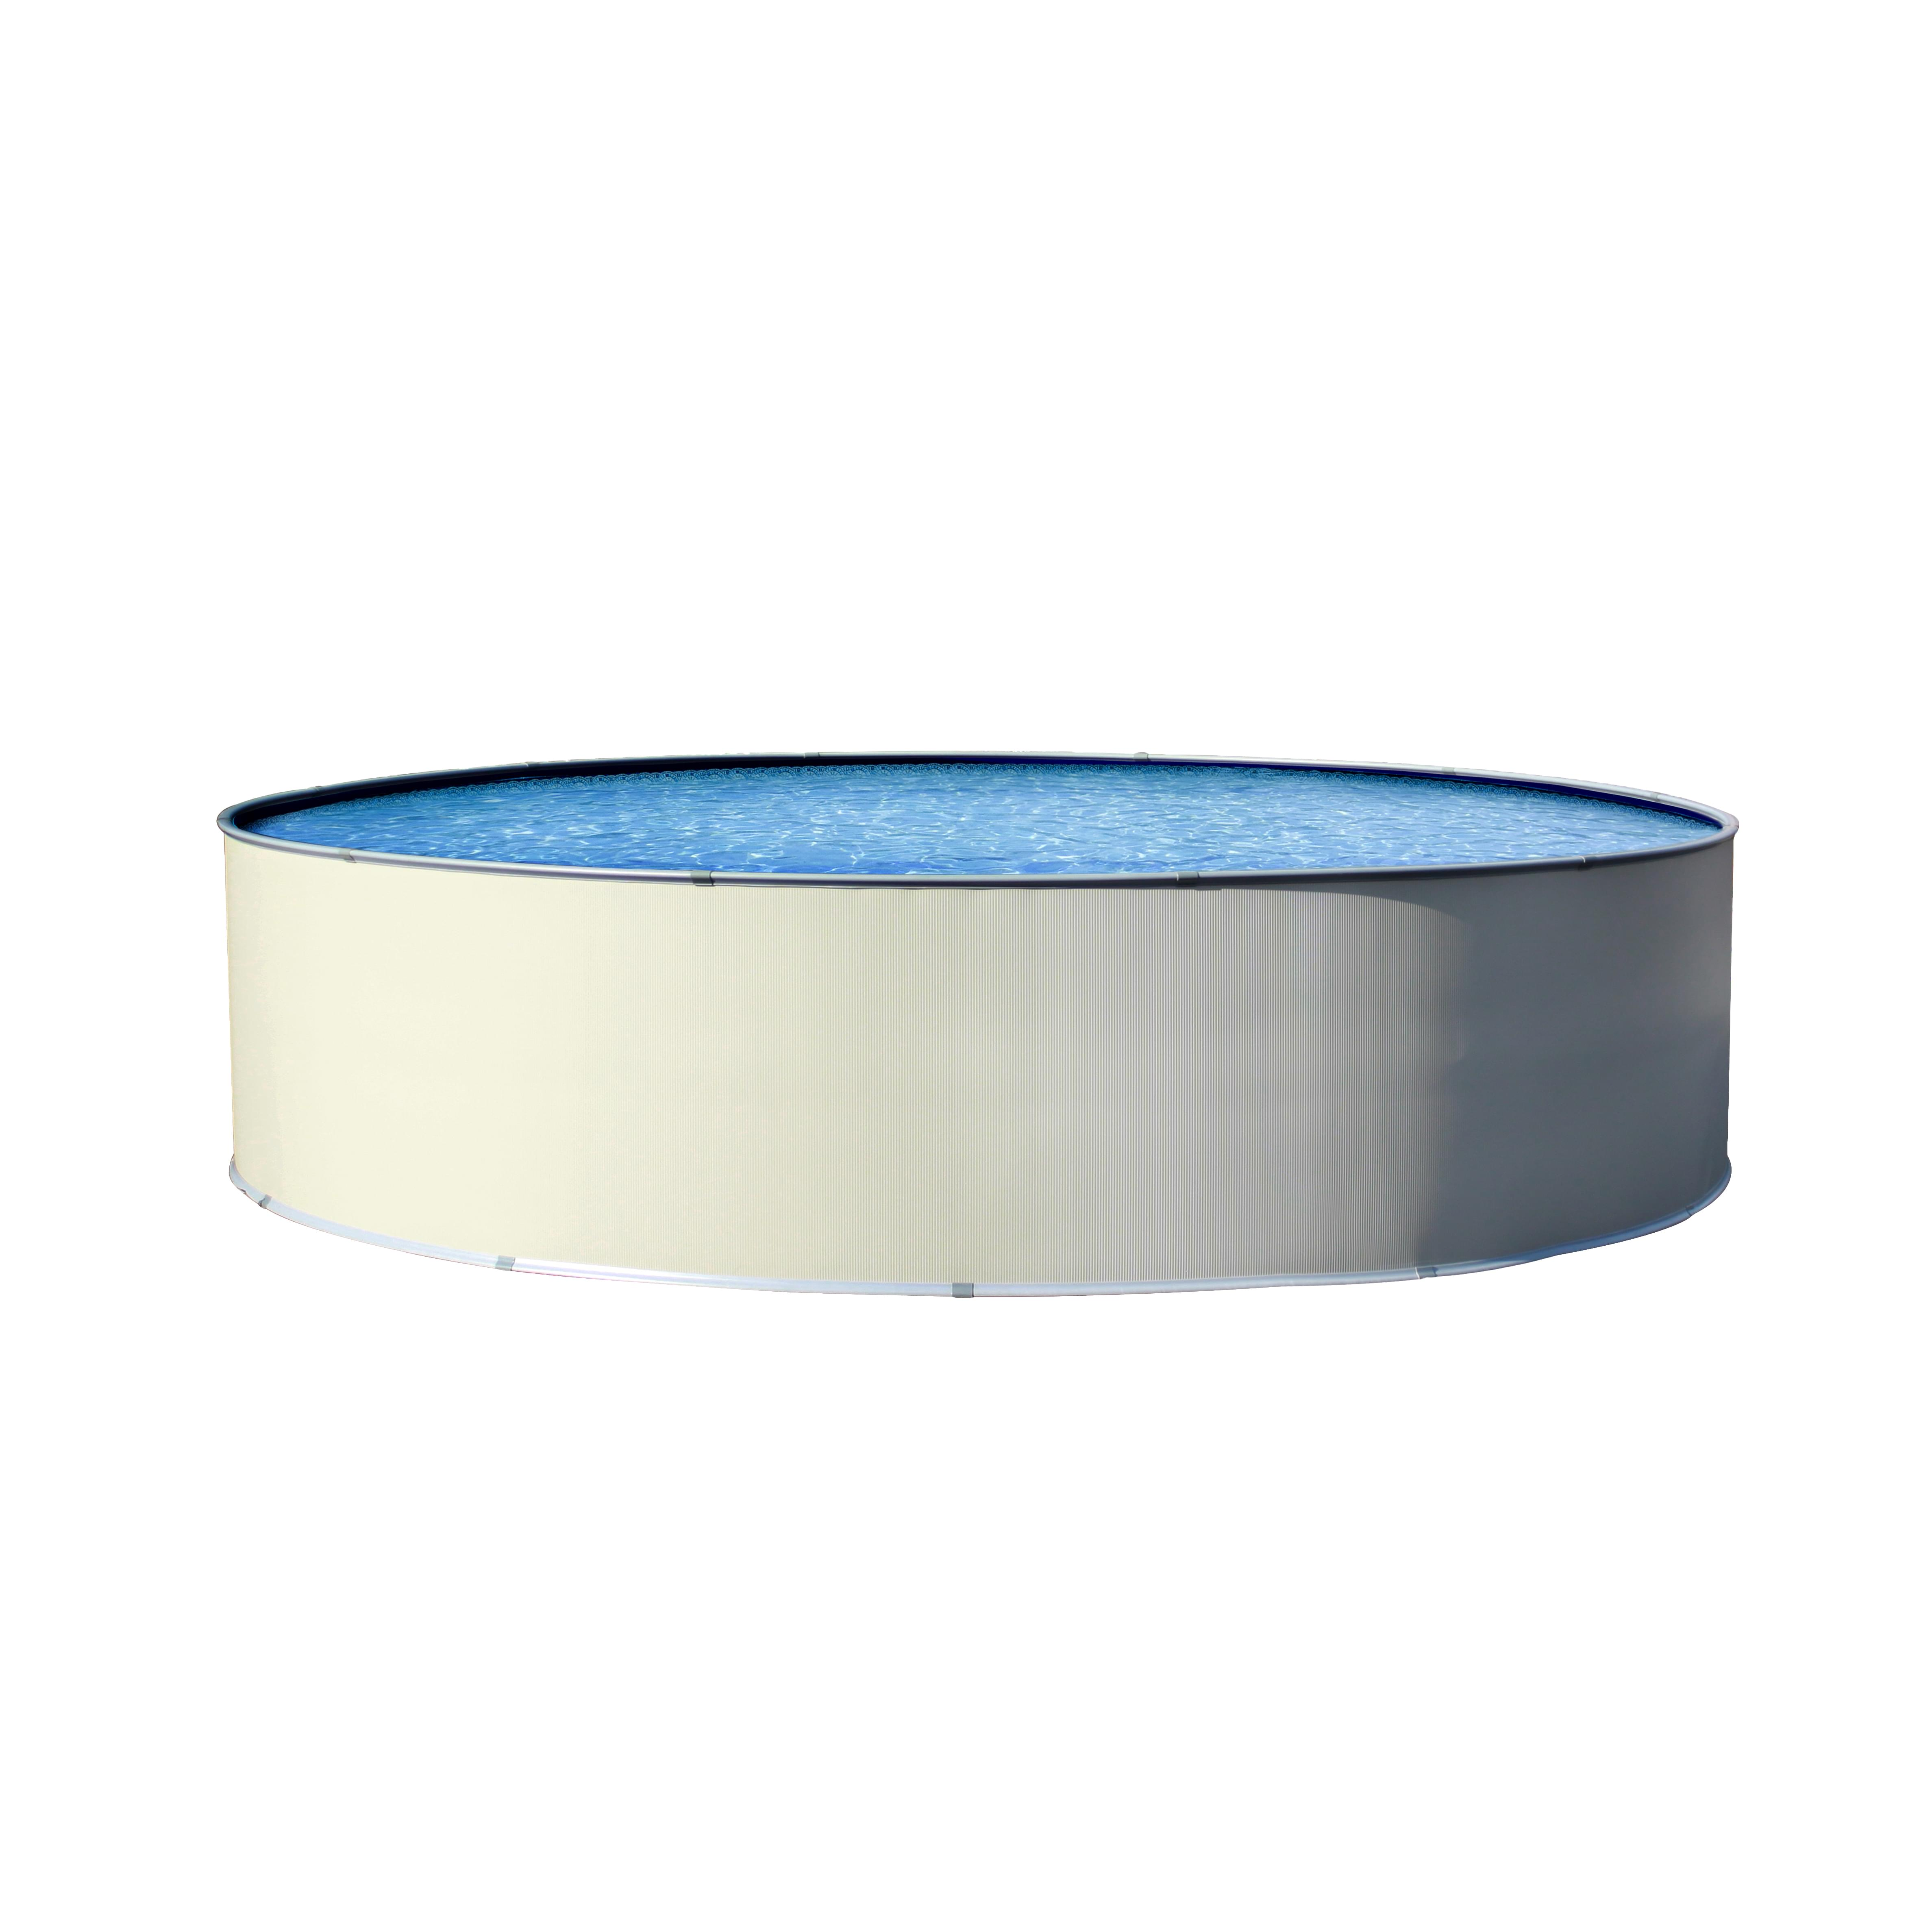 Simplicity 21 Round Above Ground Pool Pool Supplies Canada